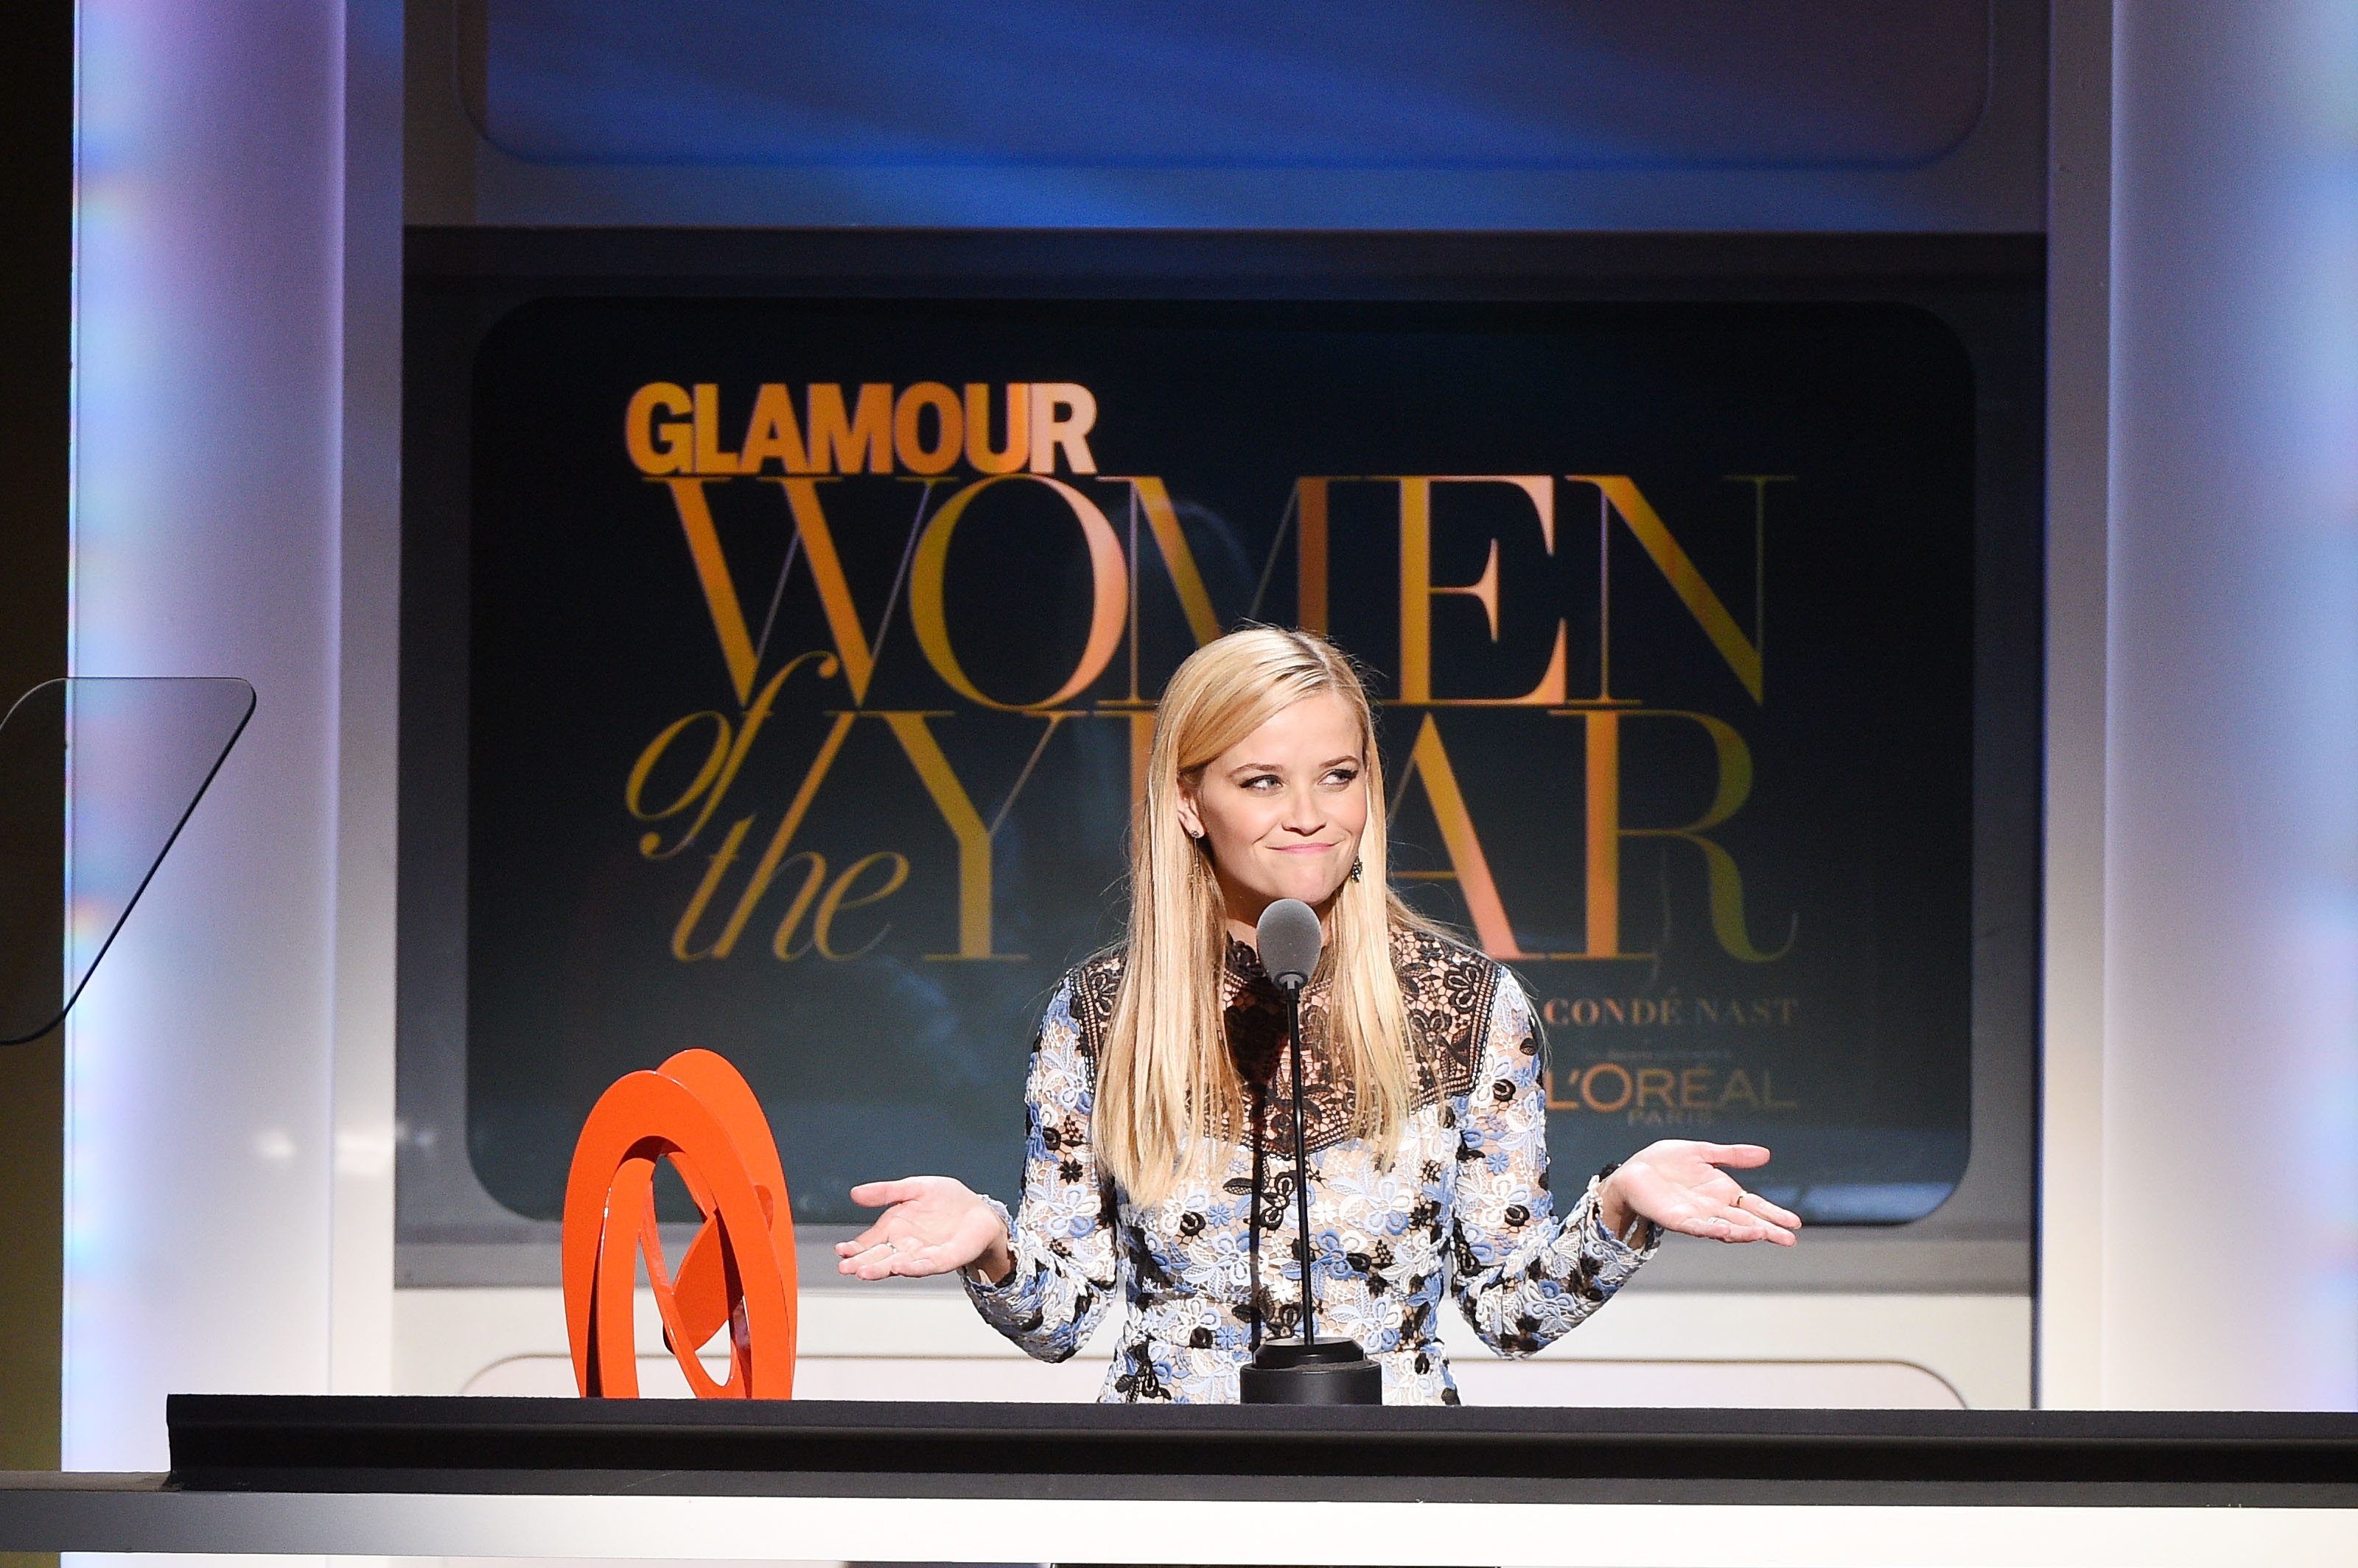 Reese Witherspoon speaks at the 2015 Glamour Women of the Year Awards on Nov. 9, 2015 in New York.